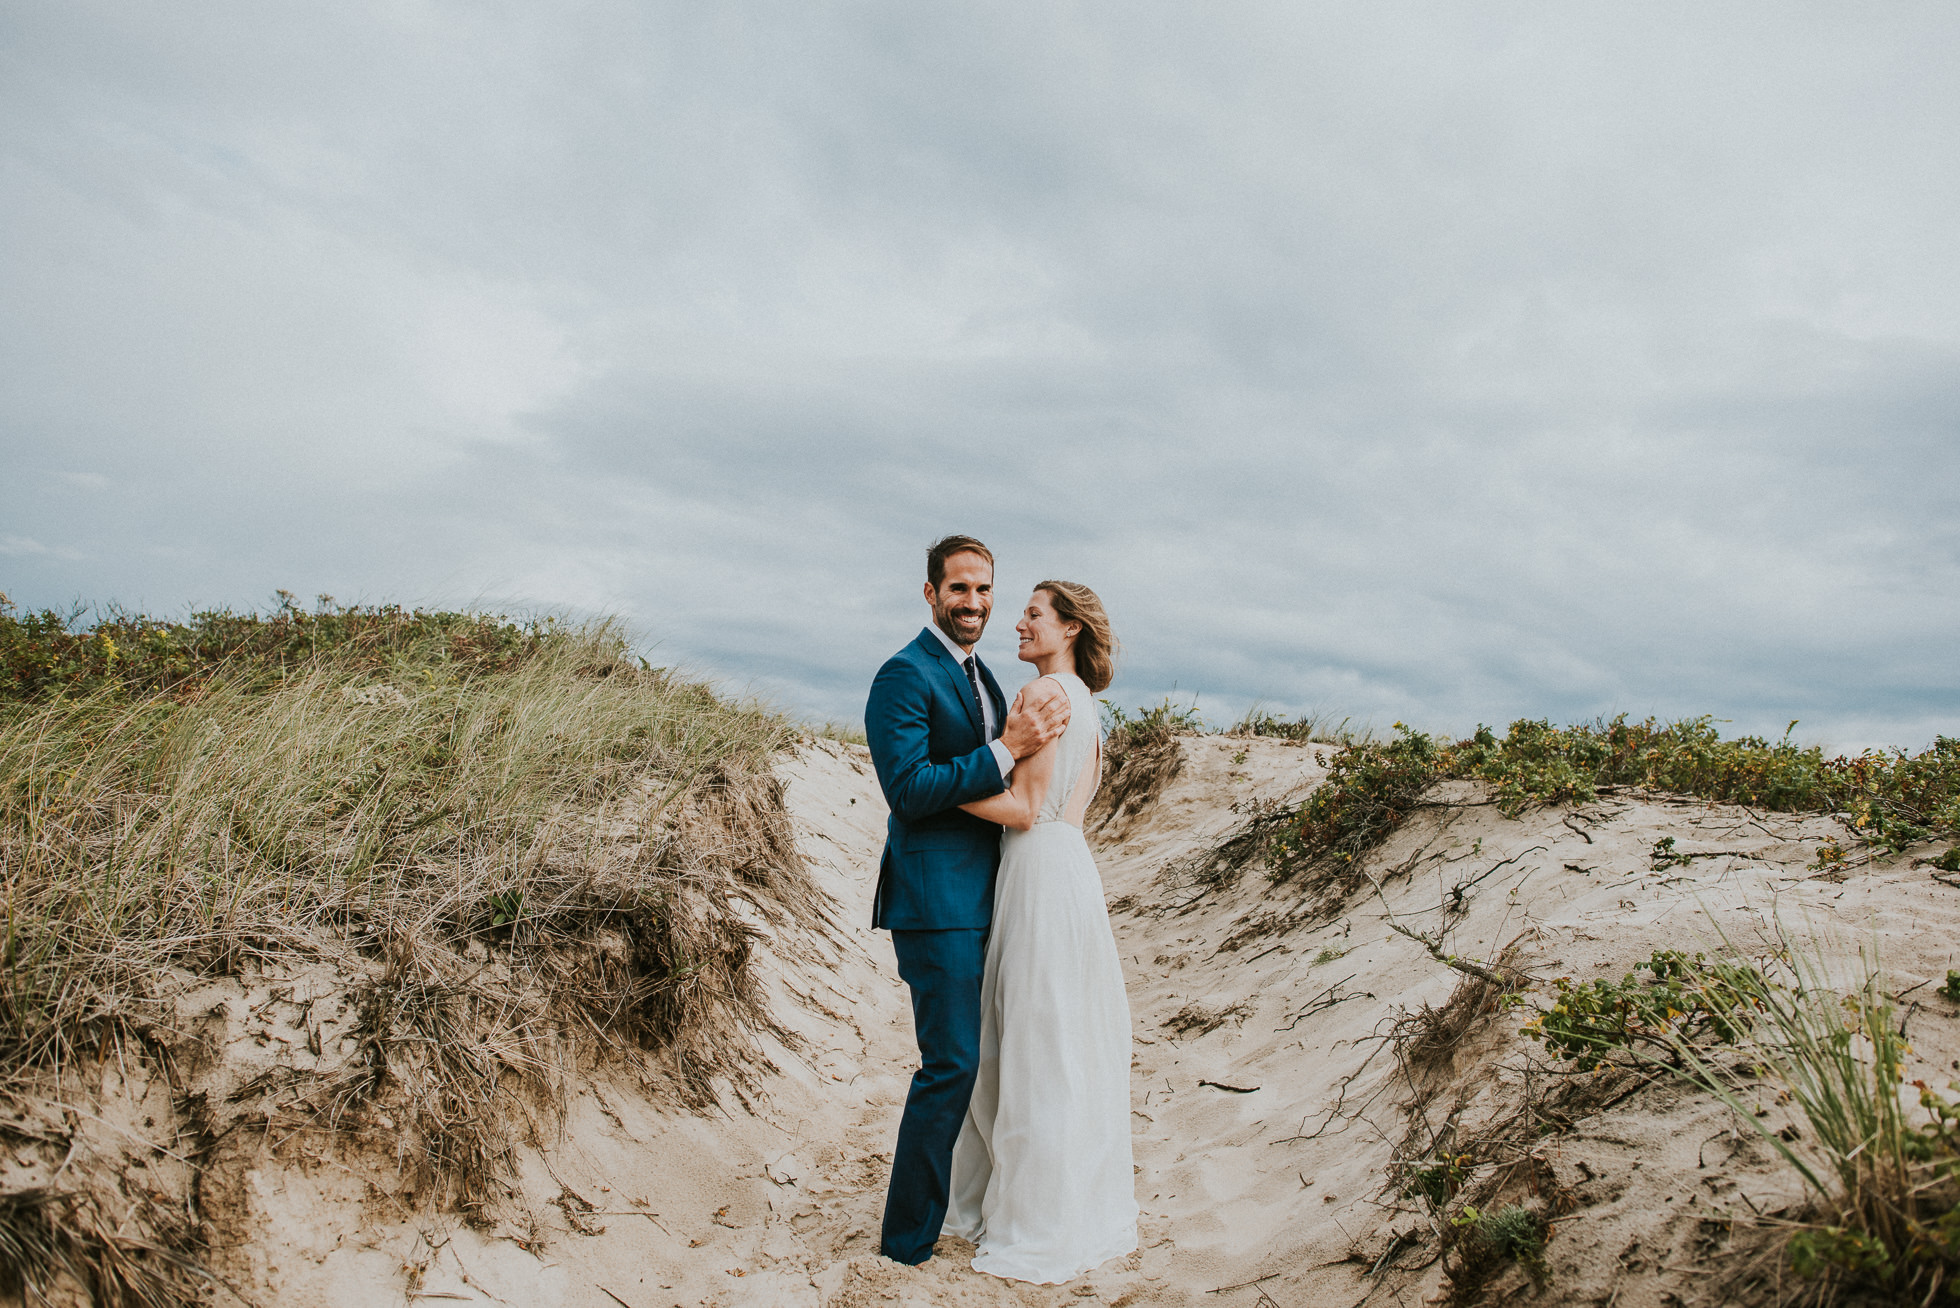 stylish bride and groom sand dunes Montauk wedding photographed by Traverse the Tides